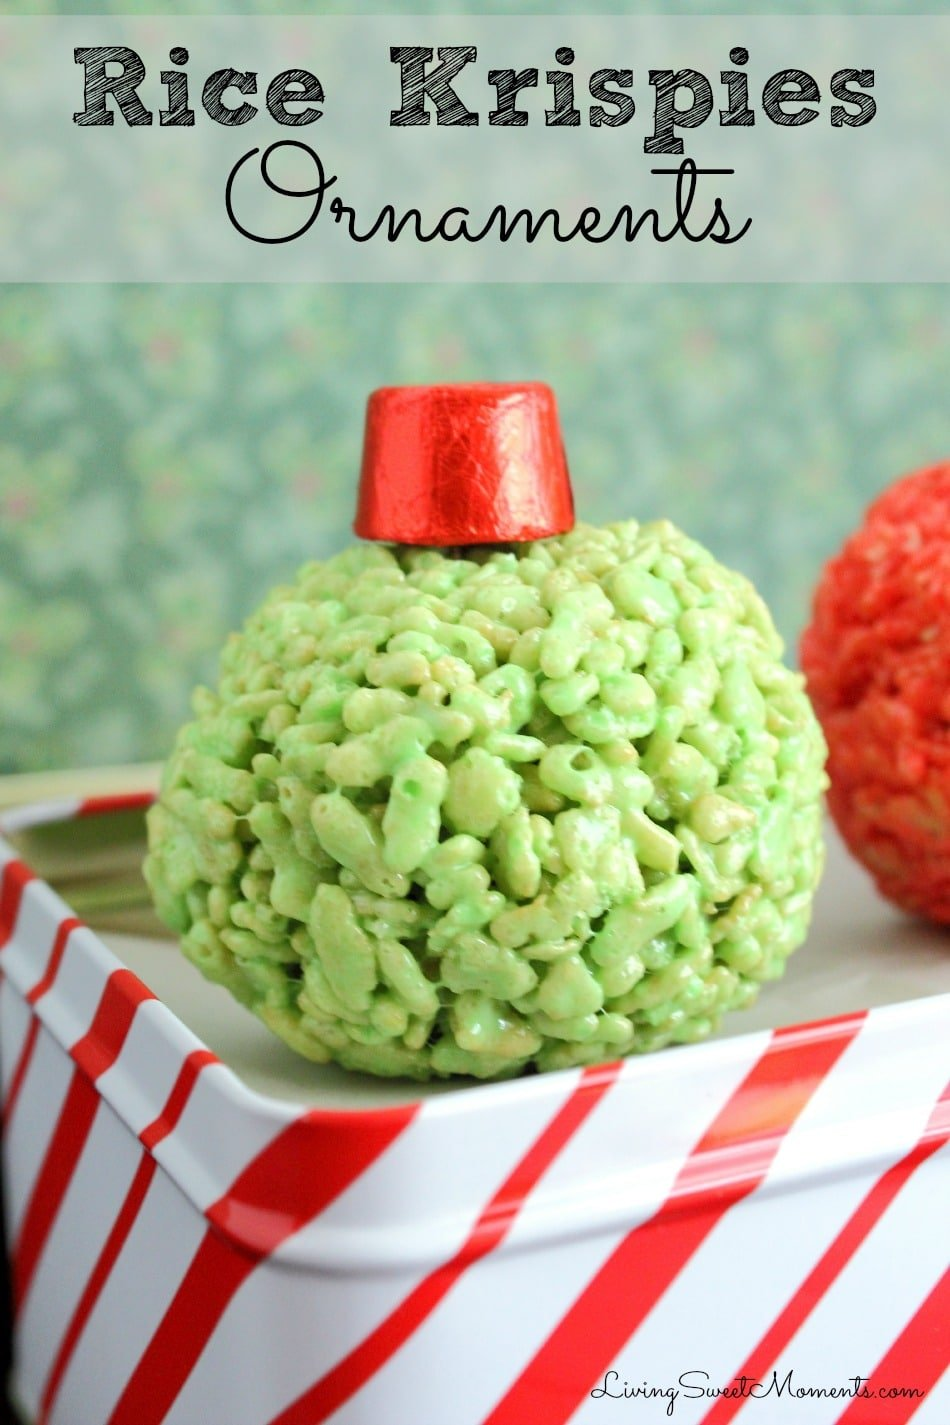 So simple and cute, these Rice Krispies Ornaments are made with just 5 ingredients. Top each one off with a Rolo or any other kind of chocolate for a realistic effect.